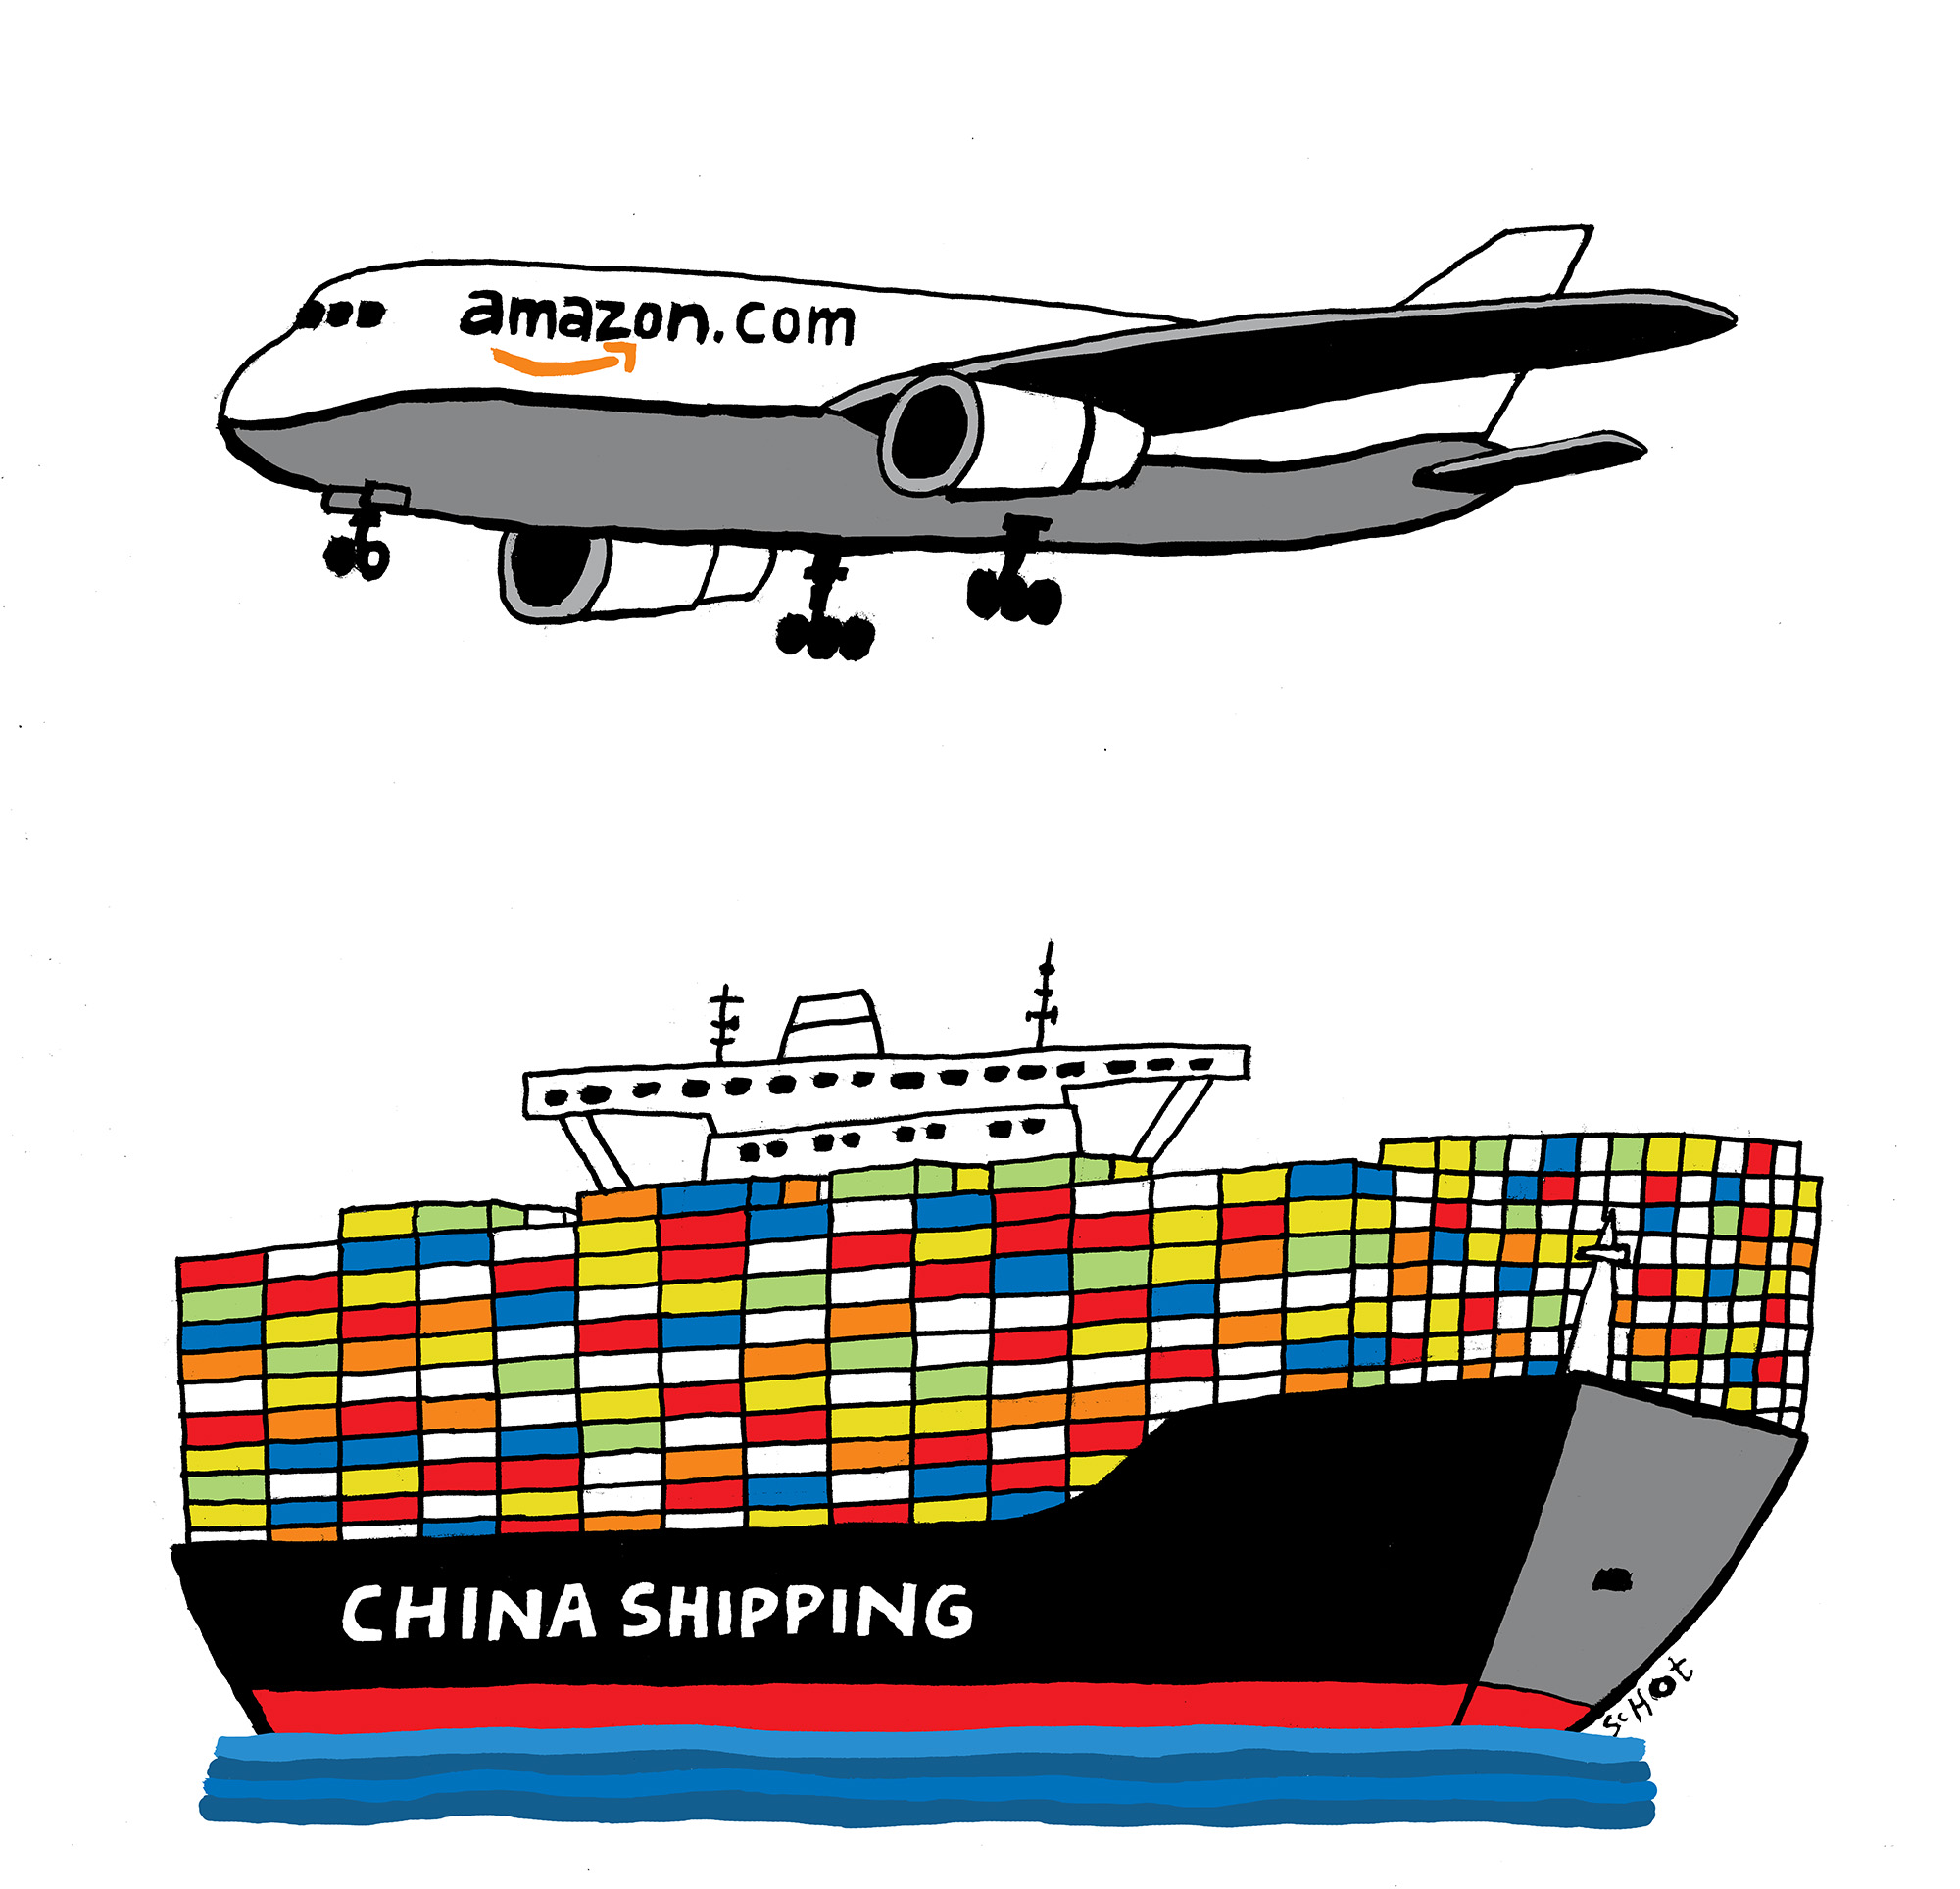 em-containers-vervoer-amazon